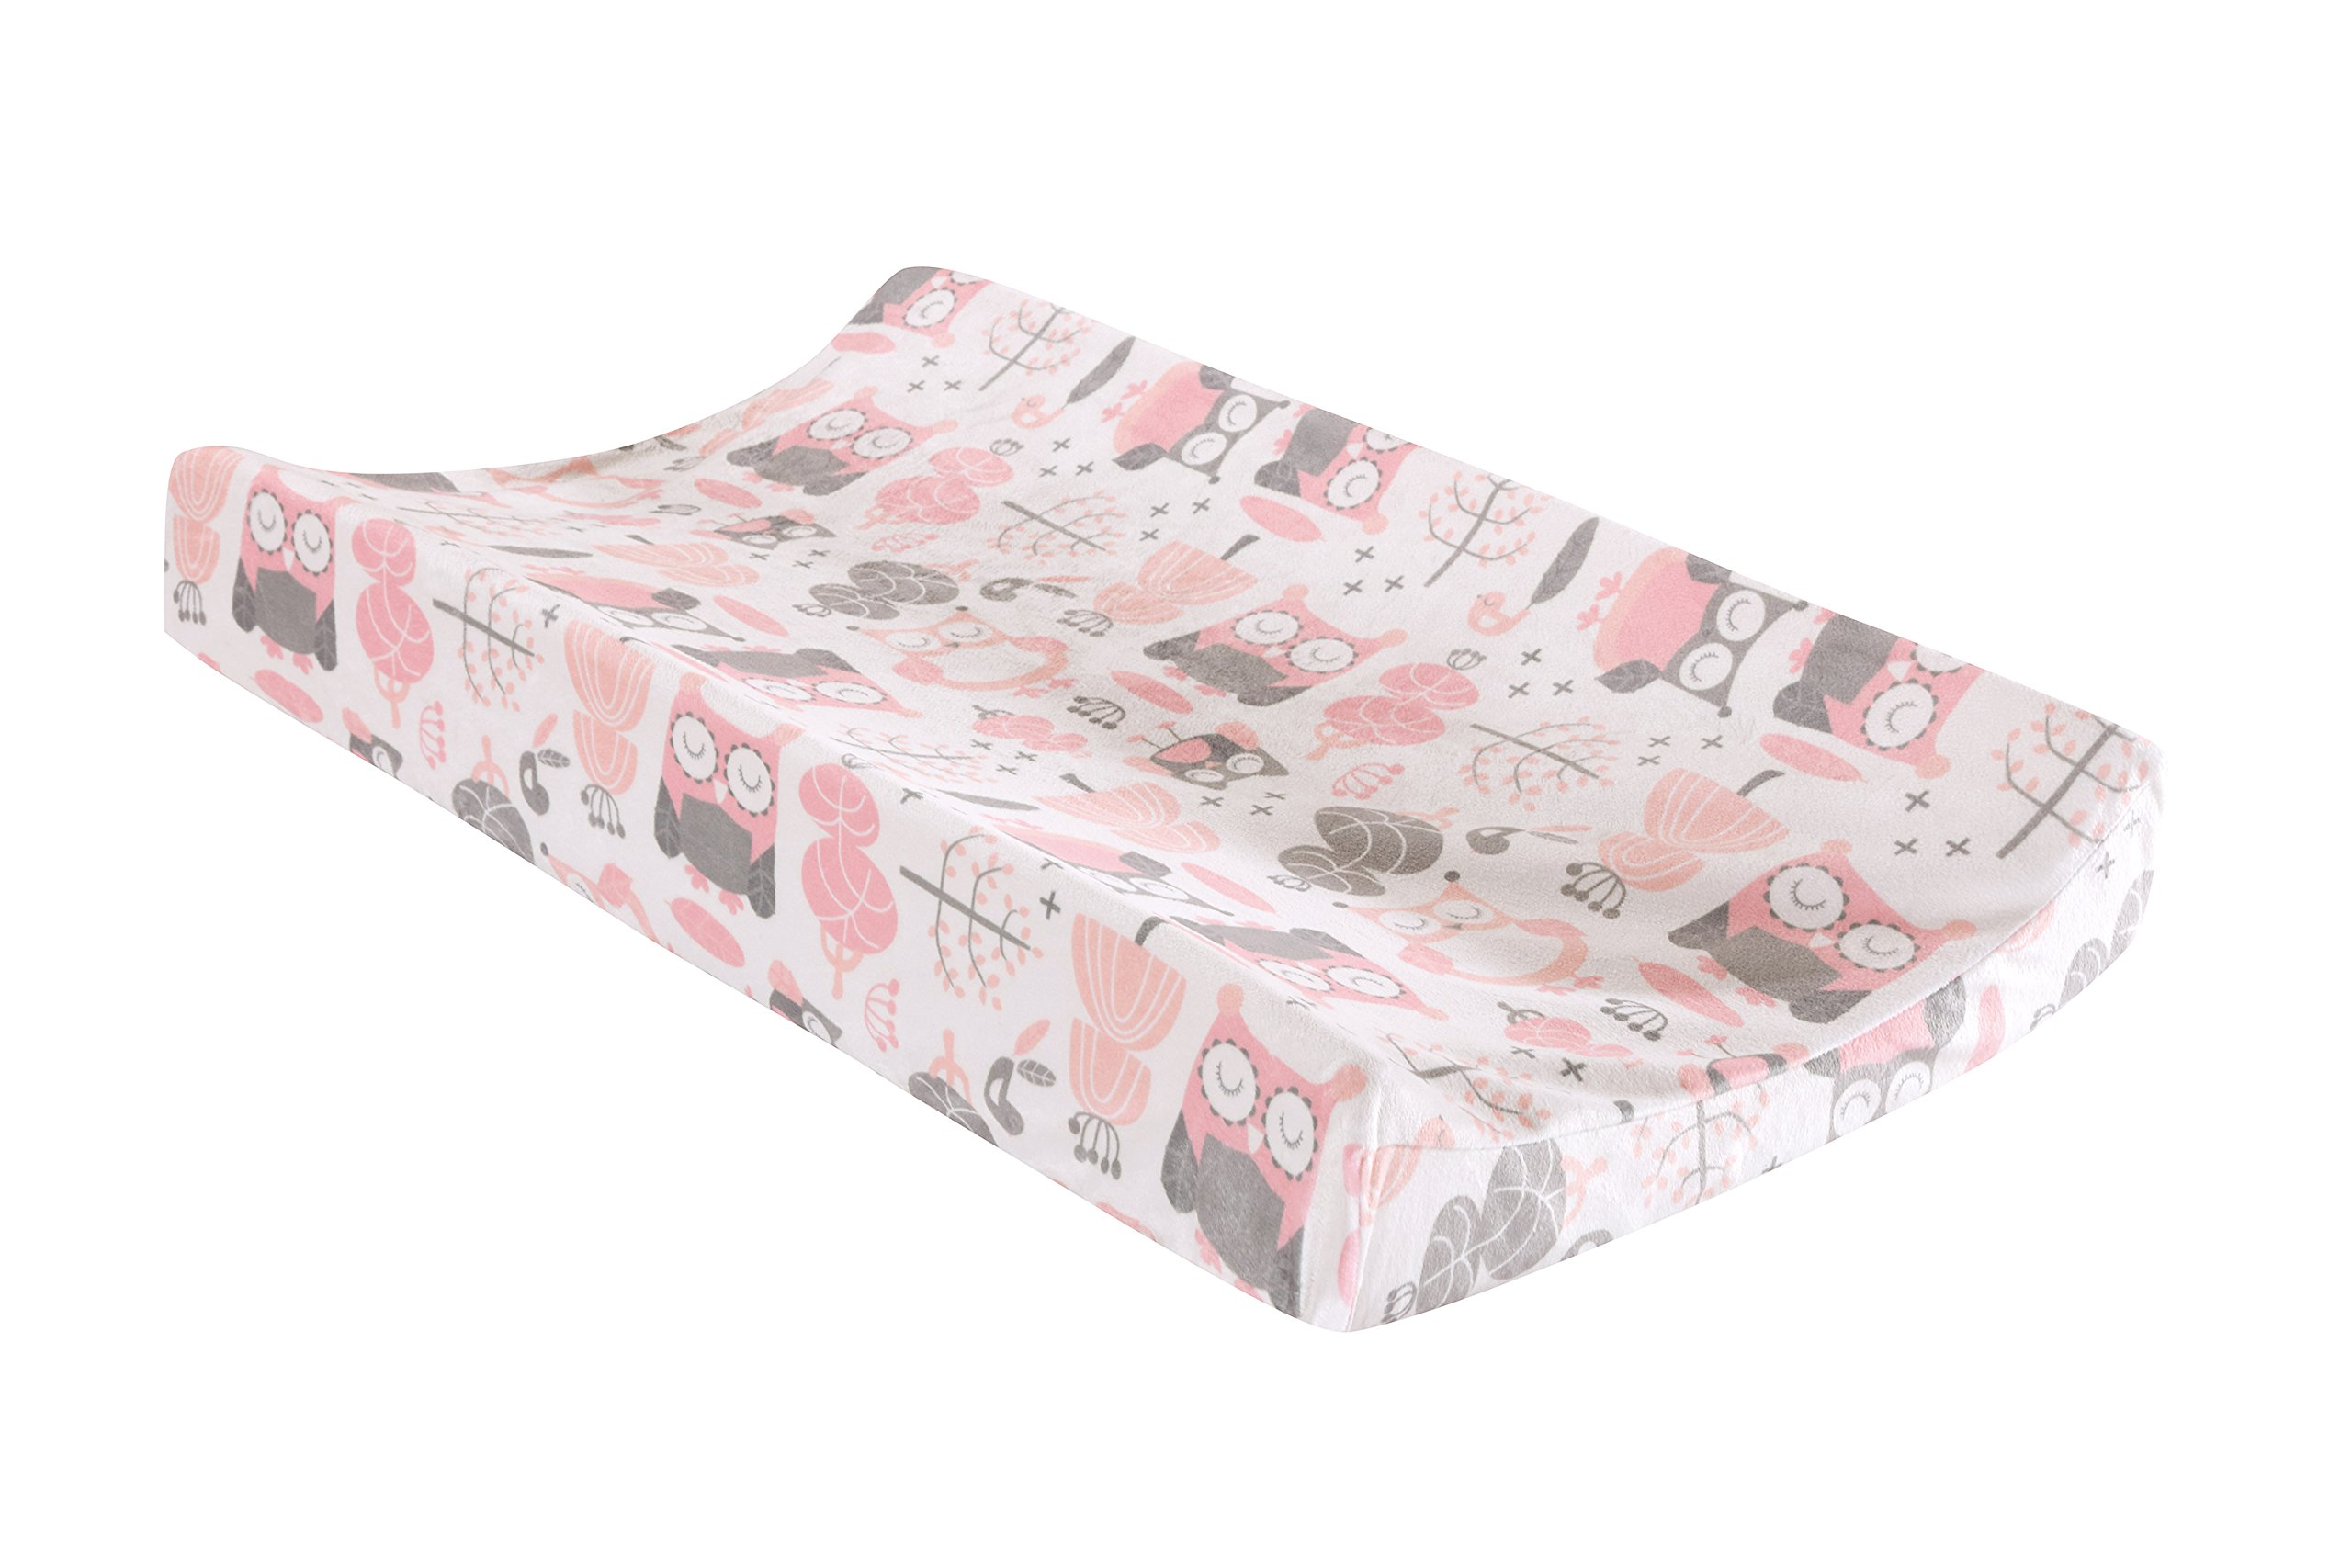 Levtex Home Baby Night Owl Changing Pad Cover, Pink